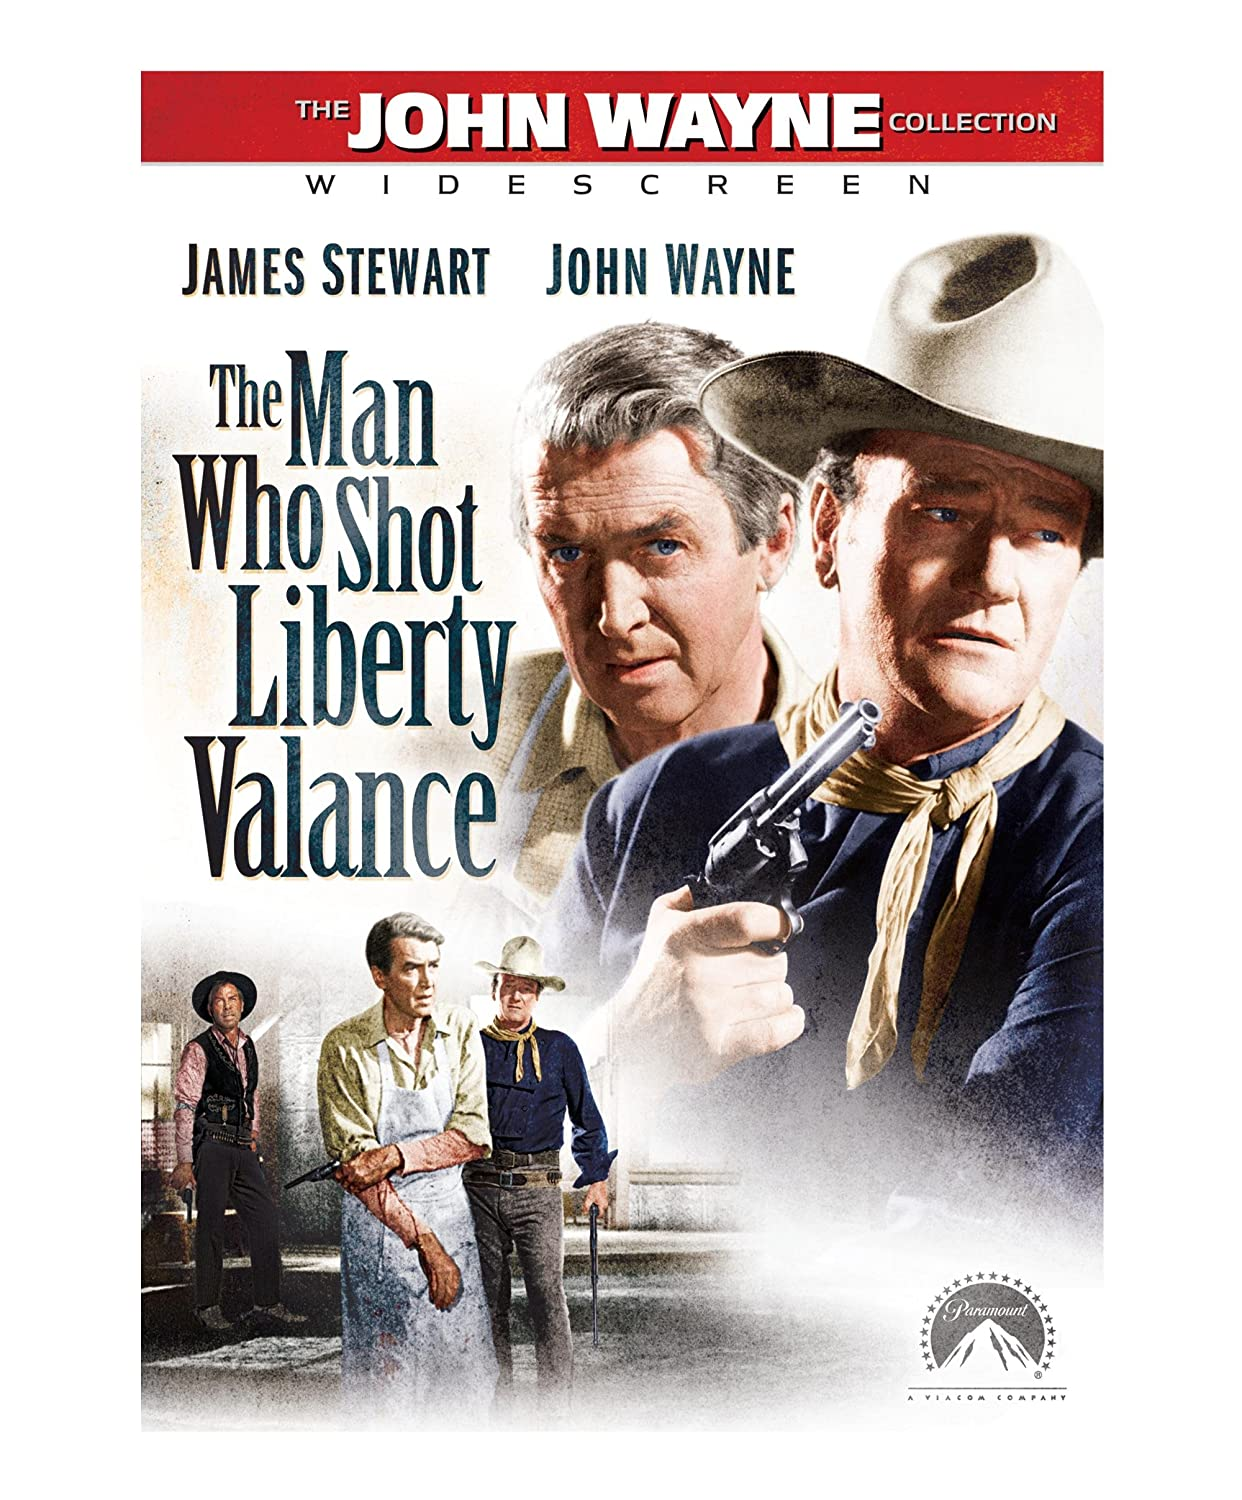 Violence To Animals In Film: The Man Who Shot Liberty Valance